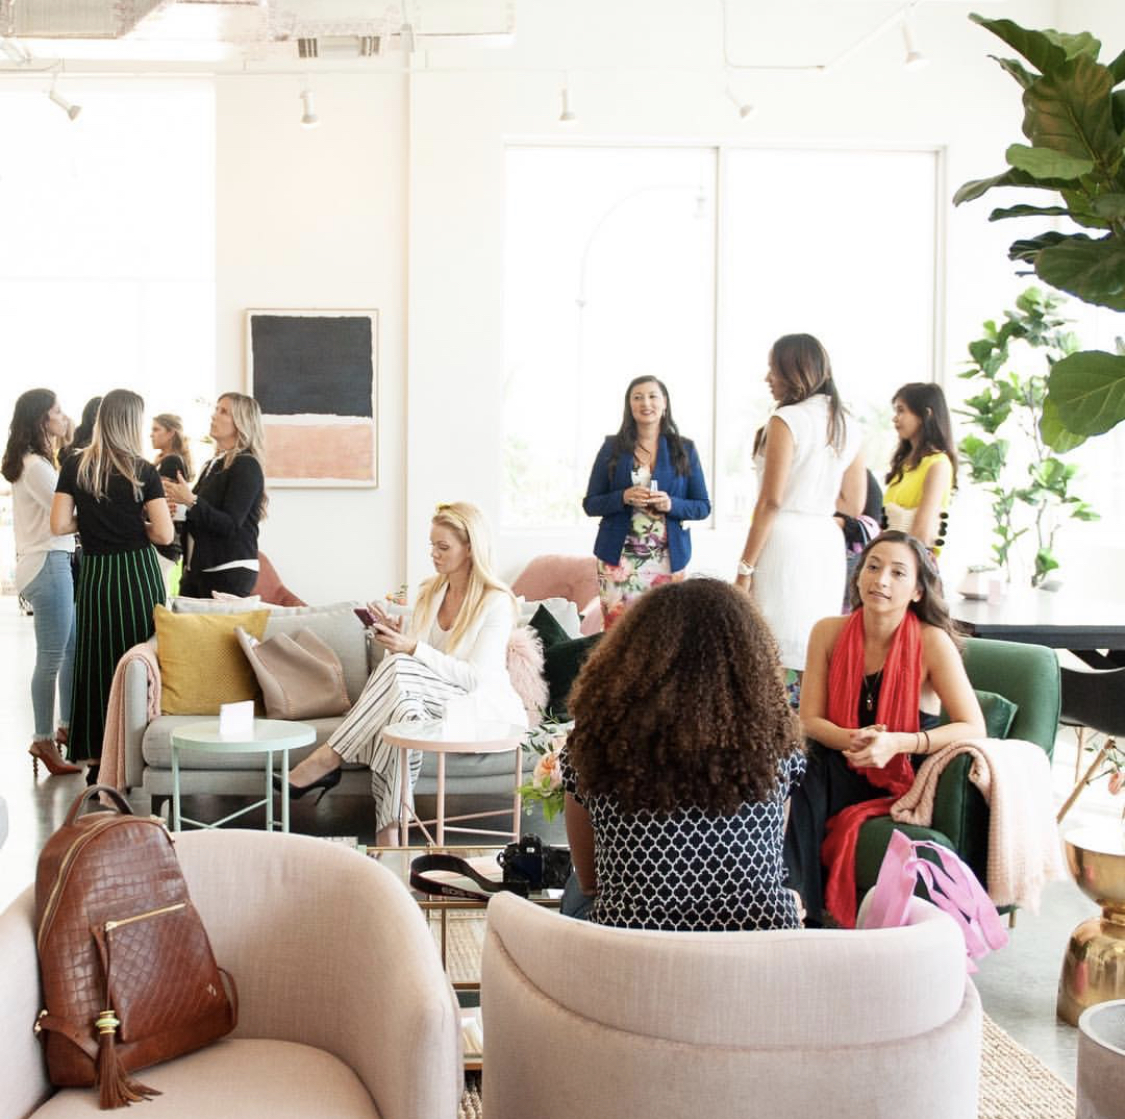 The Emery Workspace & Social Club for Women